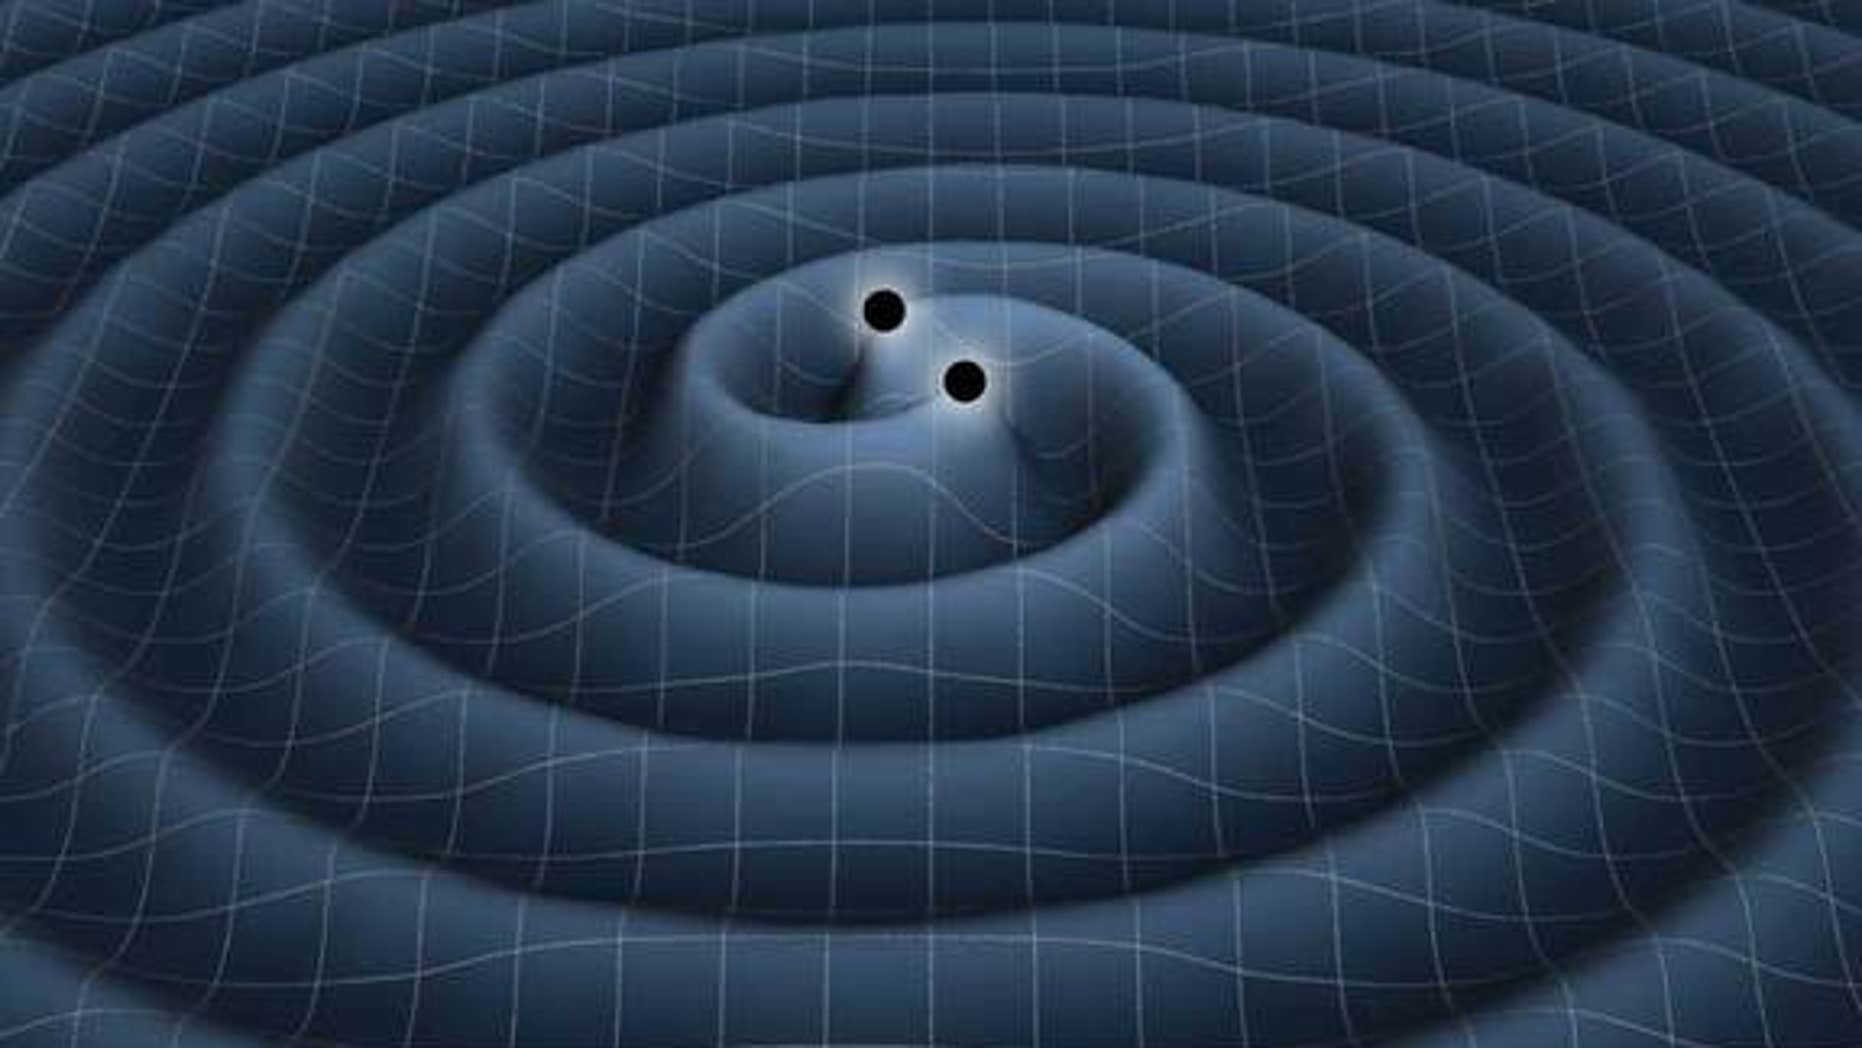 This illustration depicts the gravitational waves generated by two black holes orbiting each other.